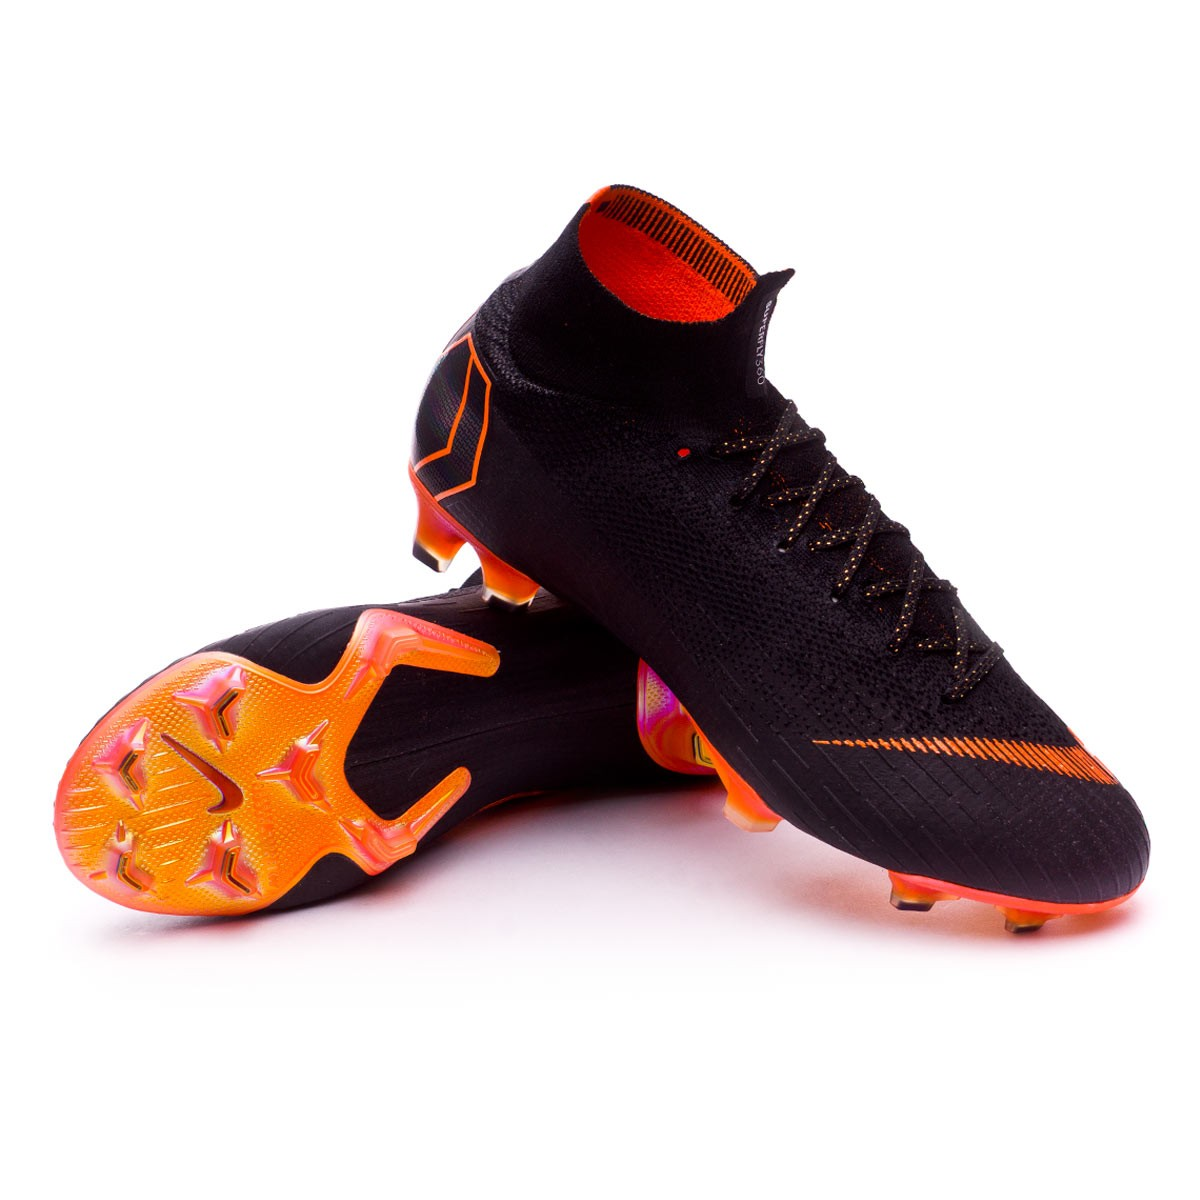 bbf358adcc5b Football Boots Nike Mercurial Superfly VI Elite FG Black-Total orange-White  - Tienda de fútbol Fútbol Emotion